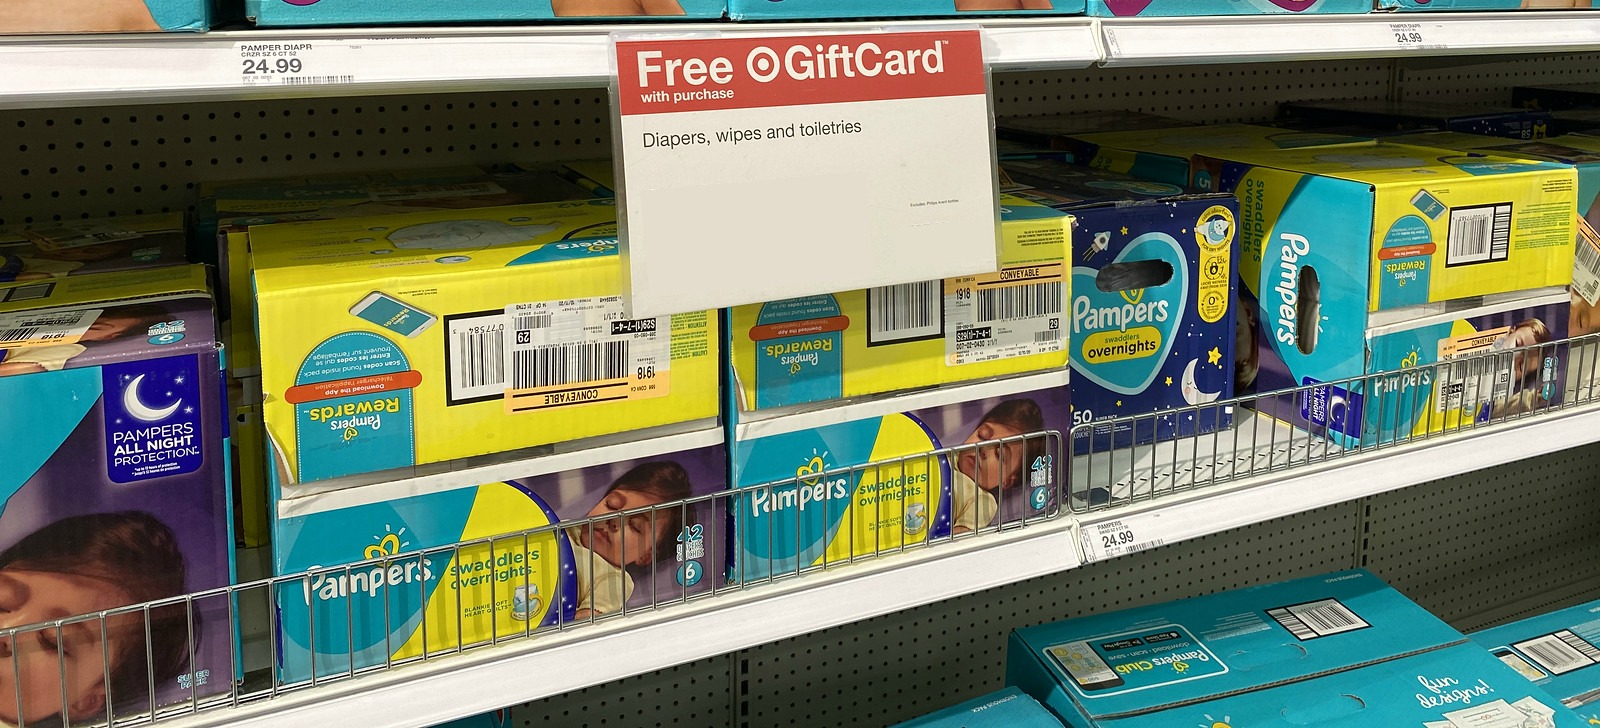 boxes of pampers overnight diapers on a target store shelf near promotional signage